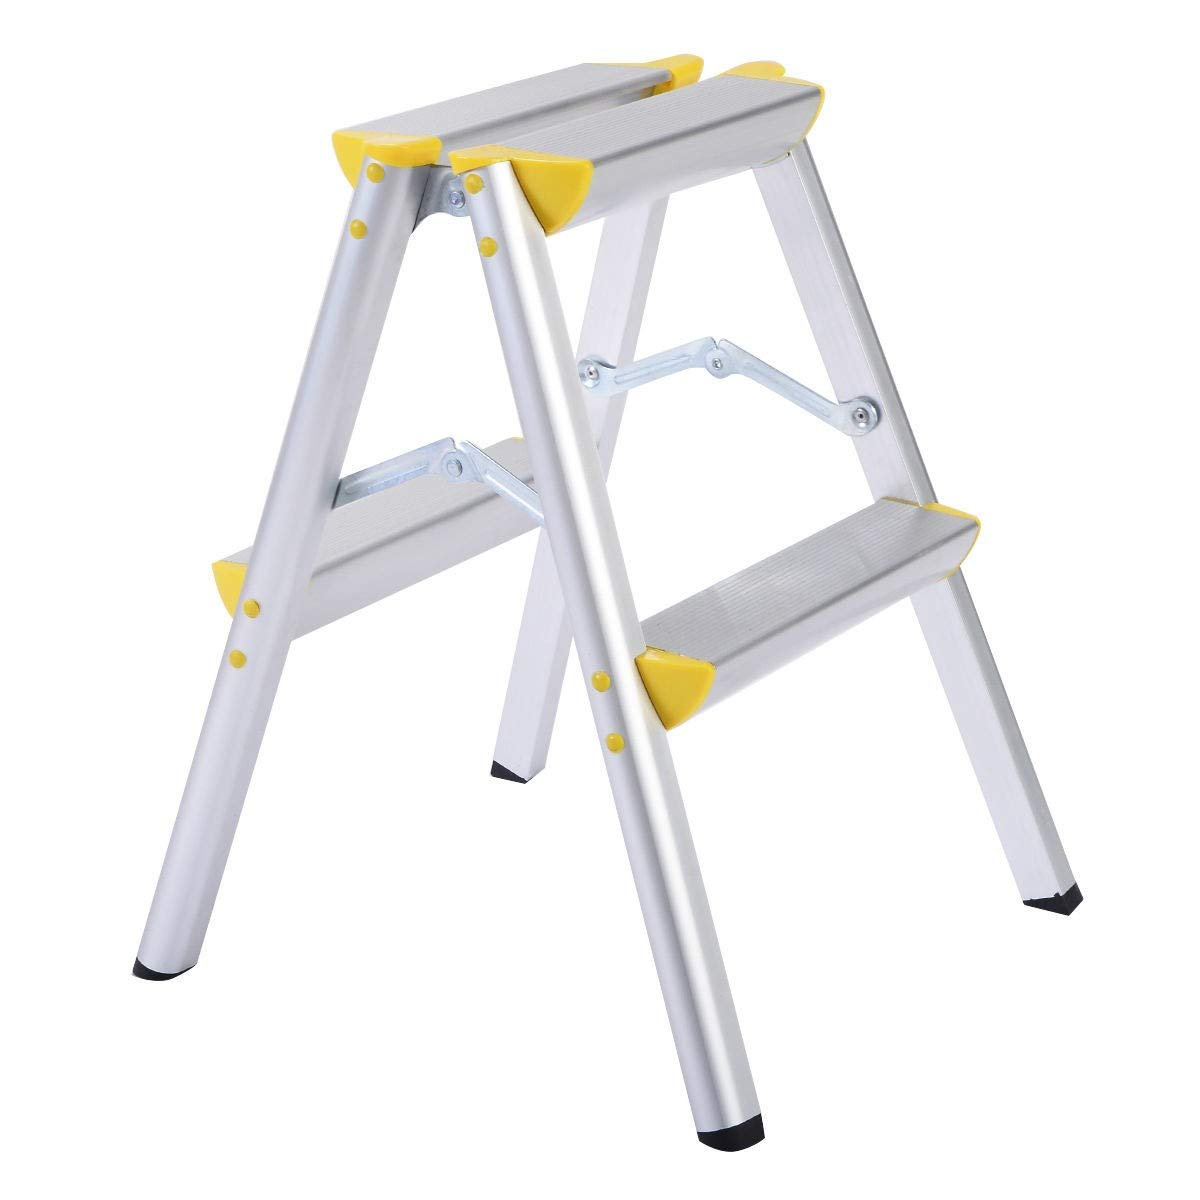 MRT SUPPLY 2 Step Aluminum Ladder Folding Platform Work Stool 330 lbs Load Capacity with Ebook